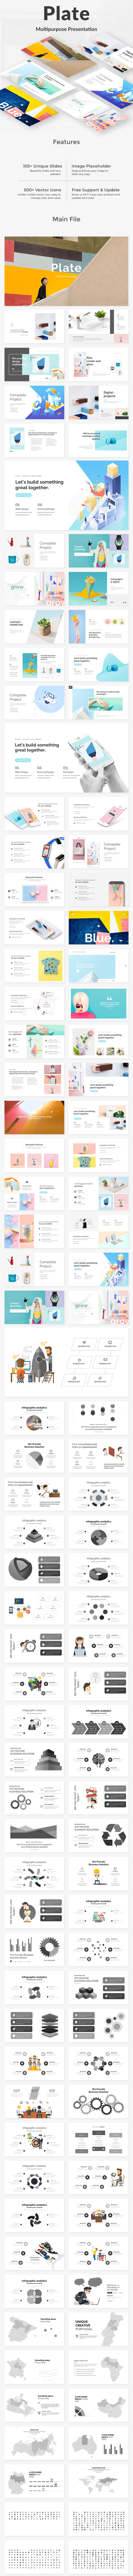 Plate Minimal Design Google Slide Template - Google Slides Presentation Templates